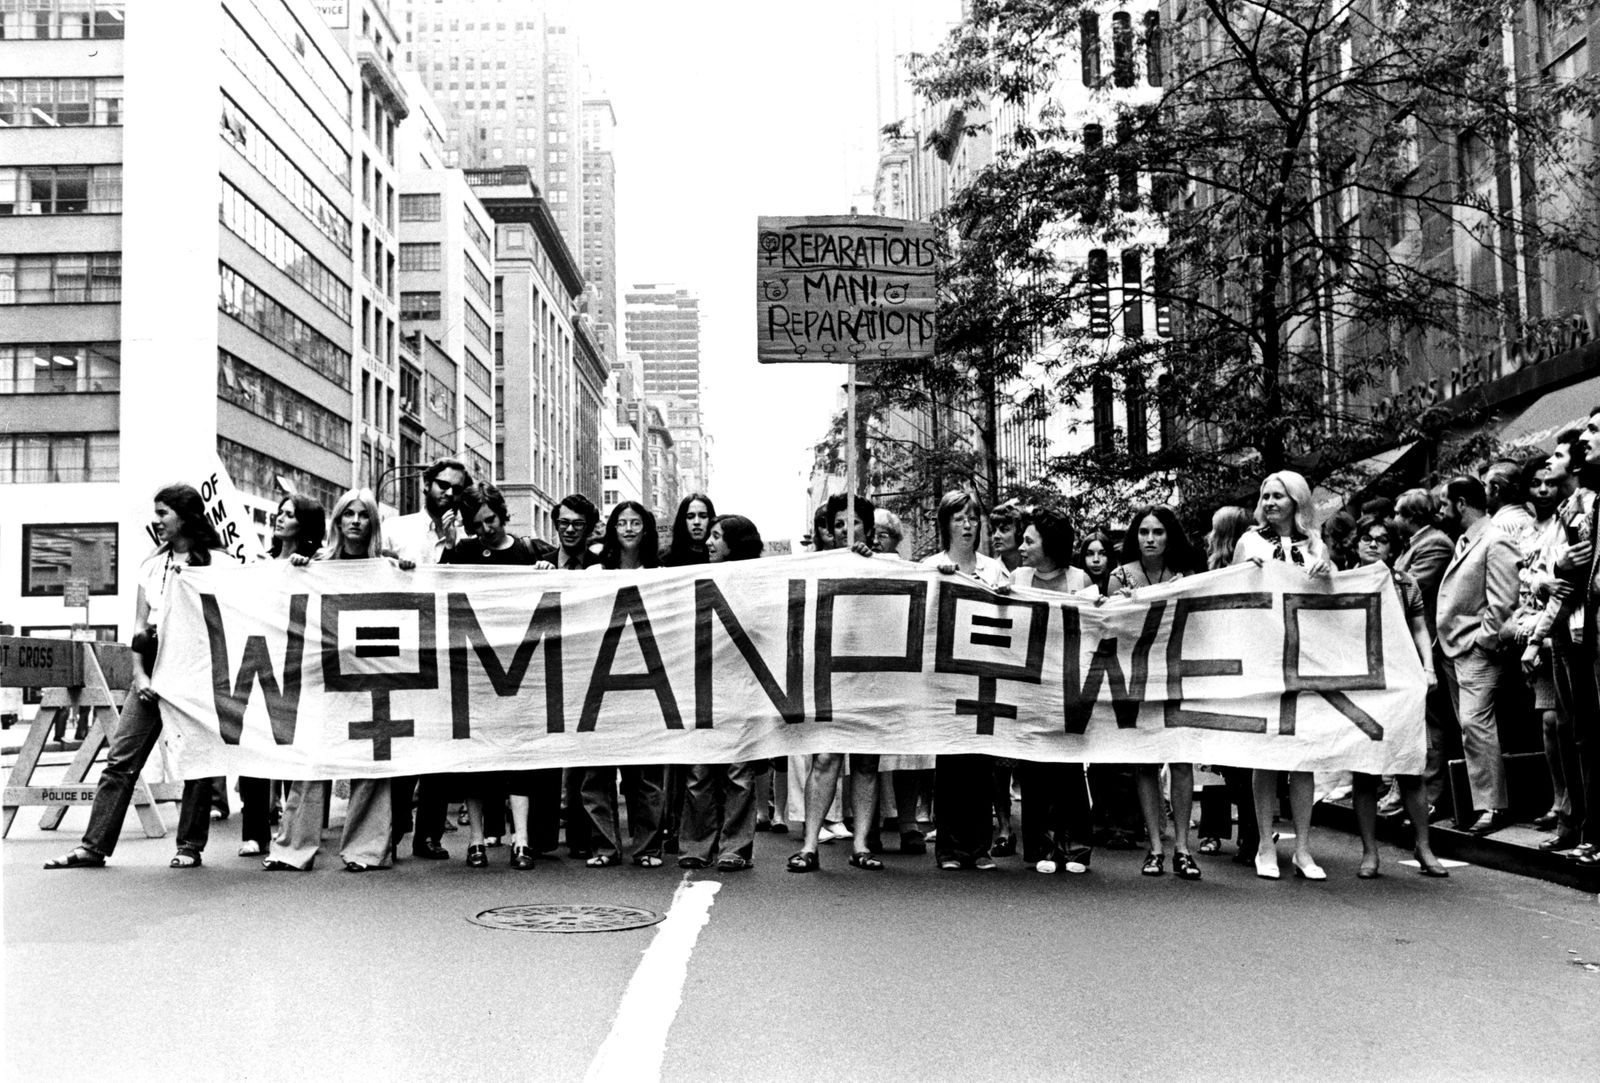 Protest in New York. March for women's liberation